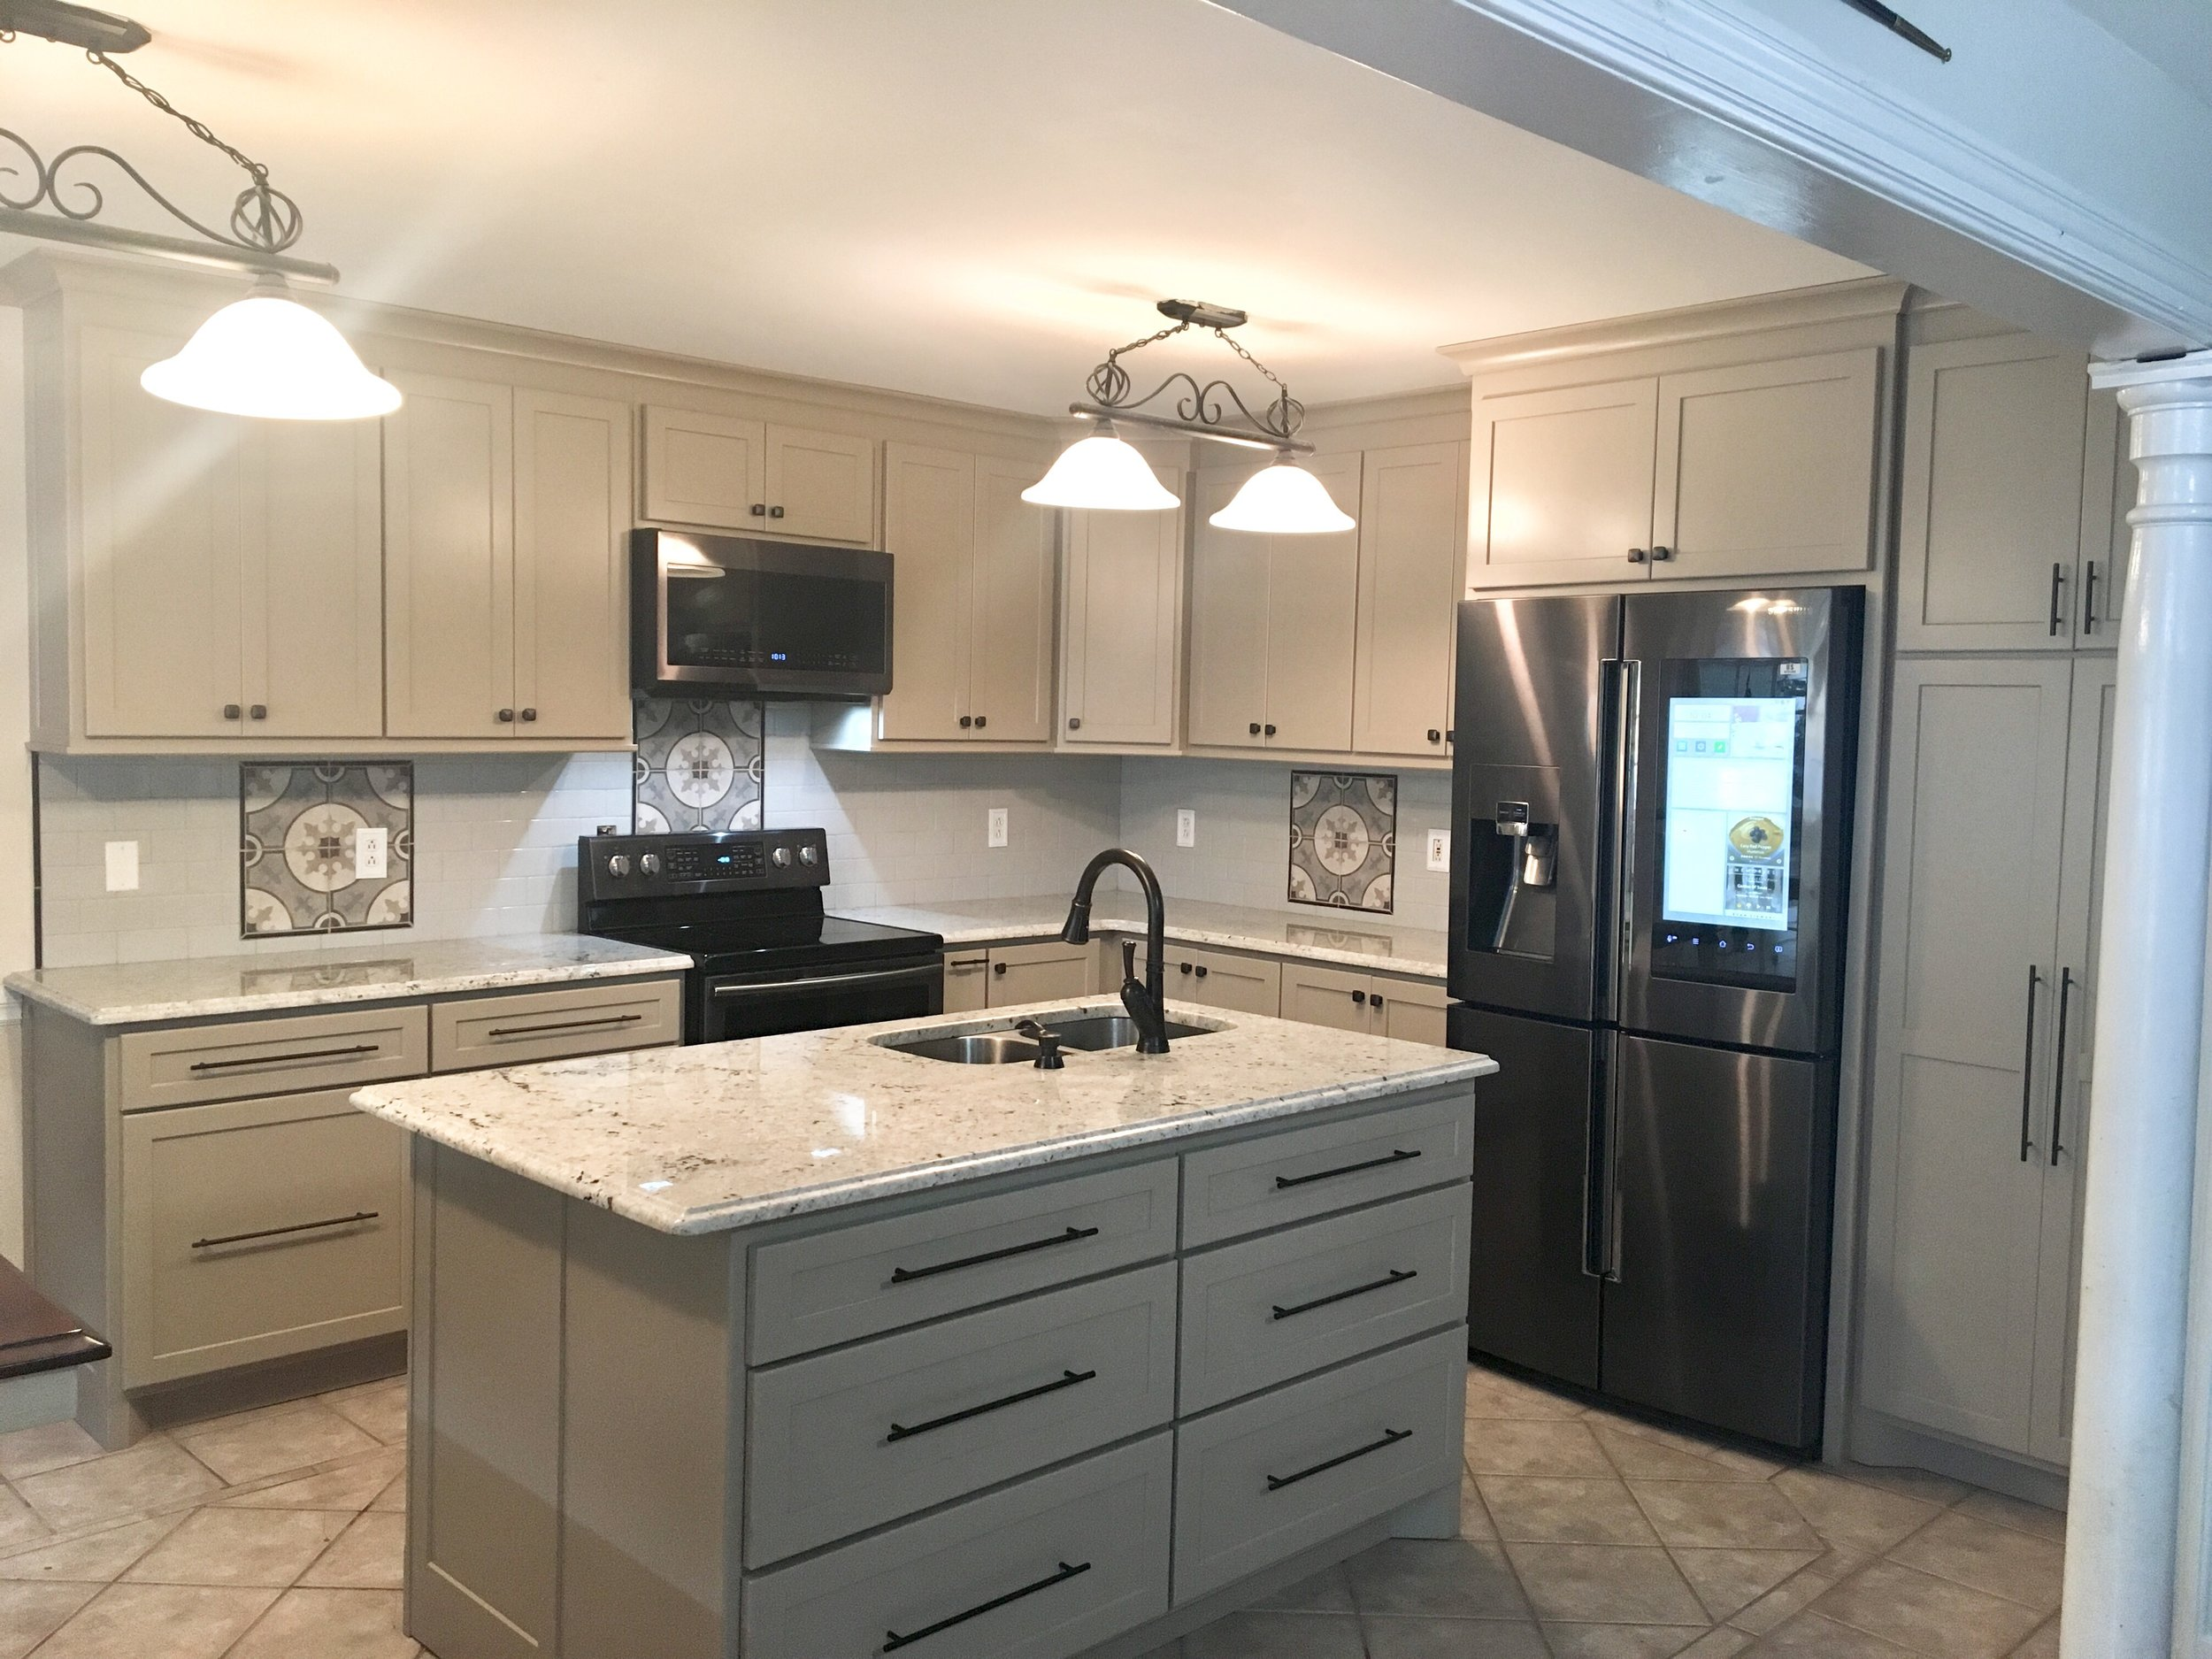 Front view of kitchen and island.